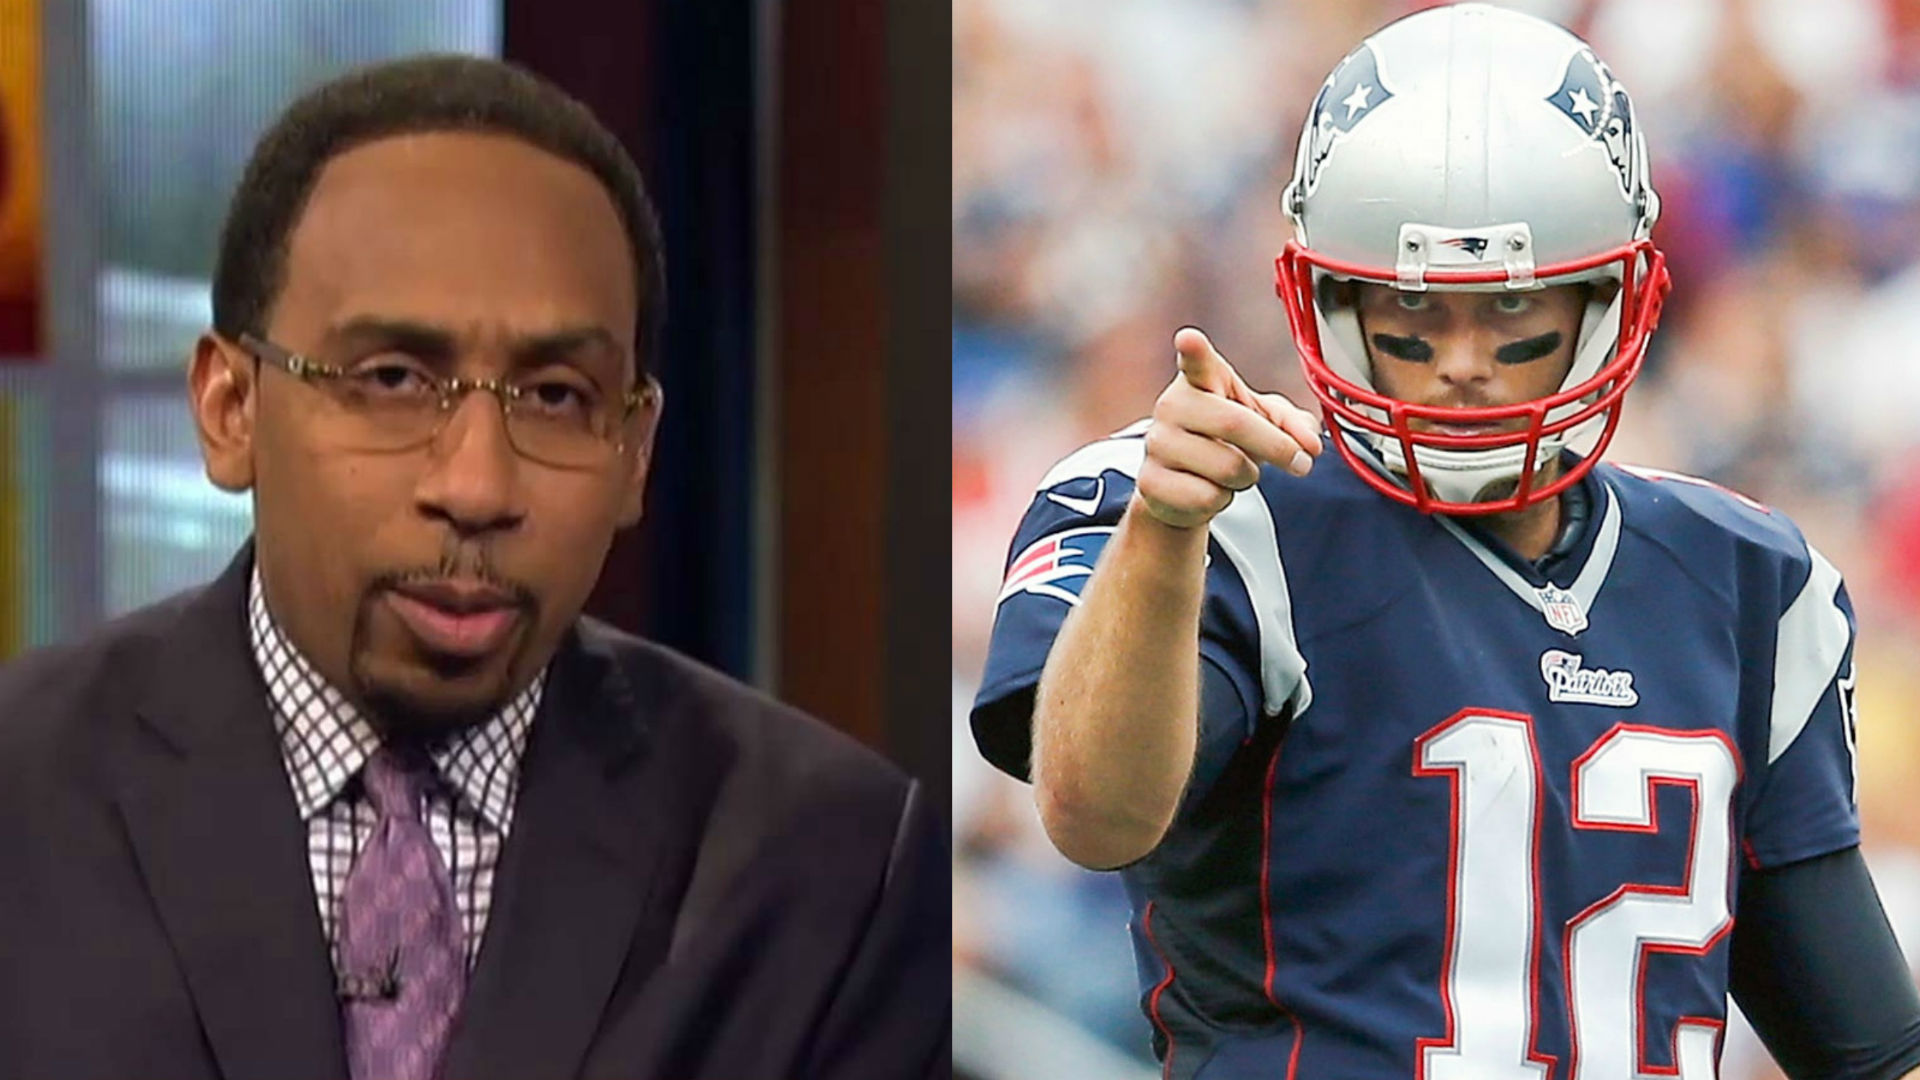 Stephen A. Smith goes on rant about Tom Brady missing White House visit